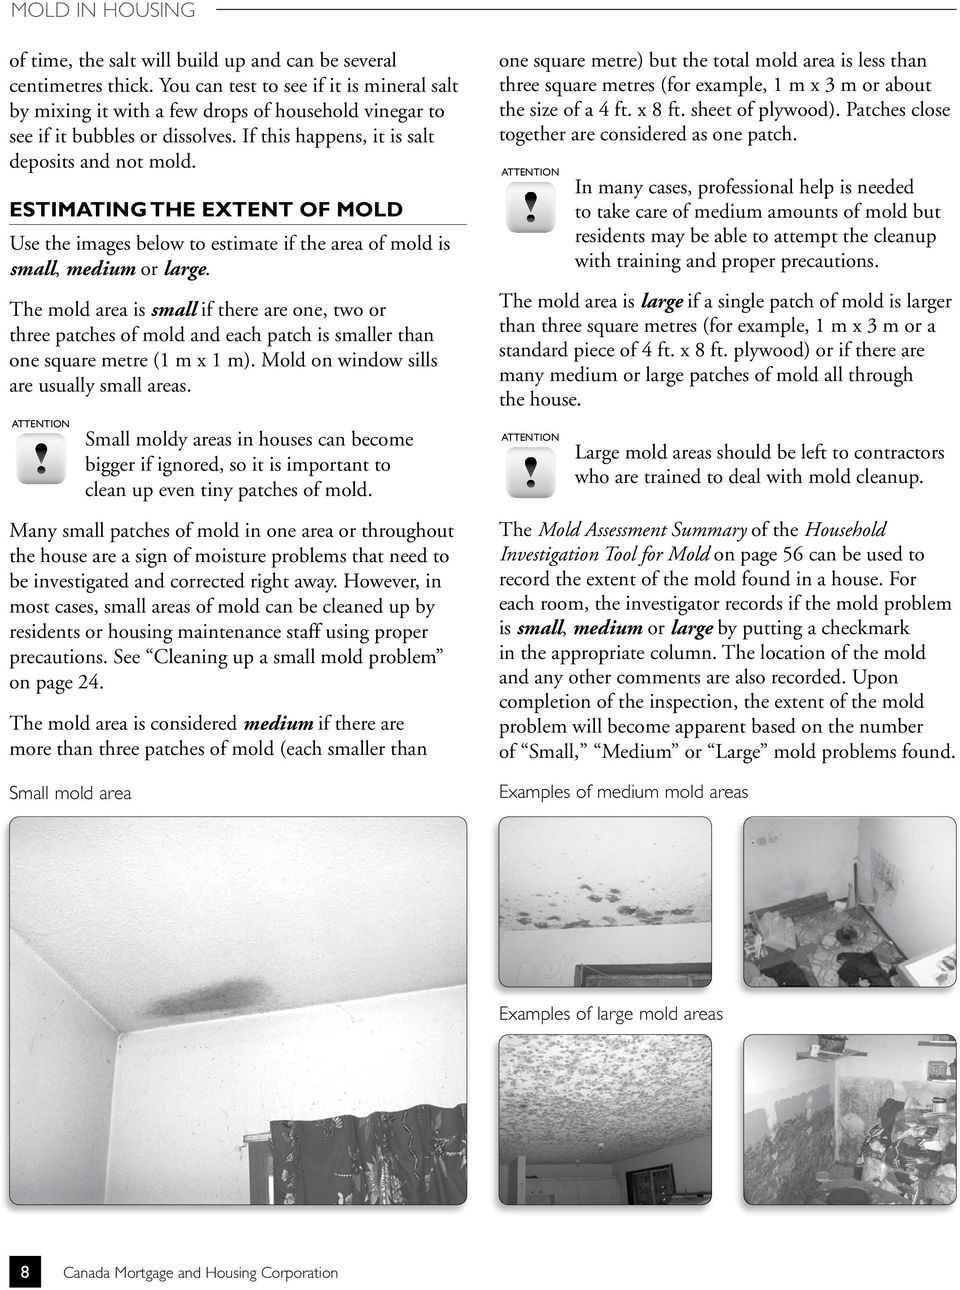 ESTIMATING THE EXTENT OF MOLD Use the images below to estimate if the area of mold is small, medium or large.